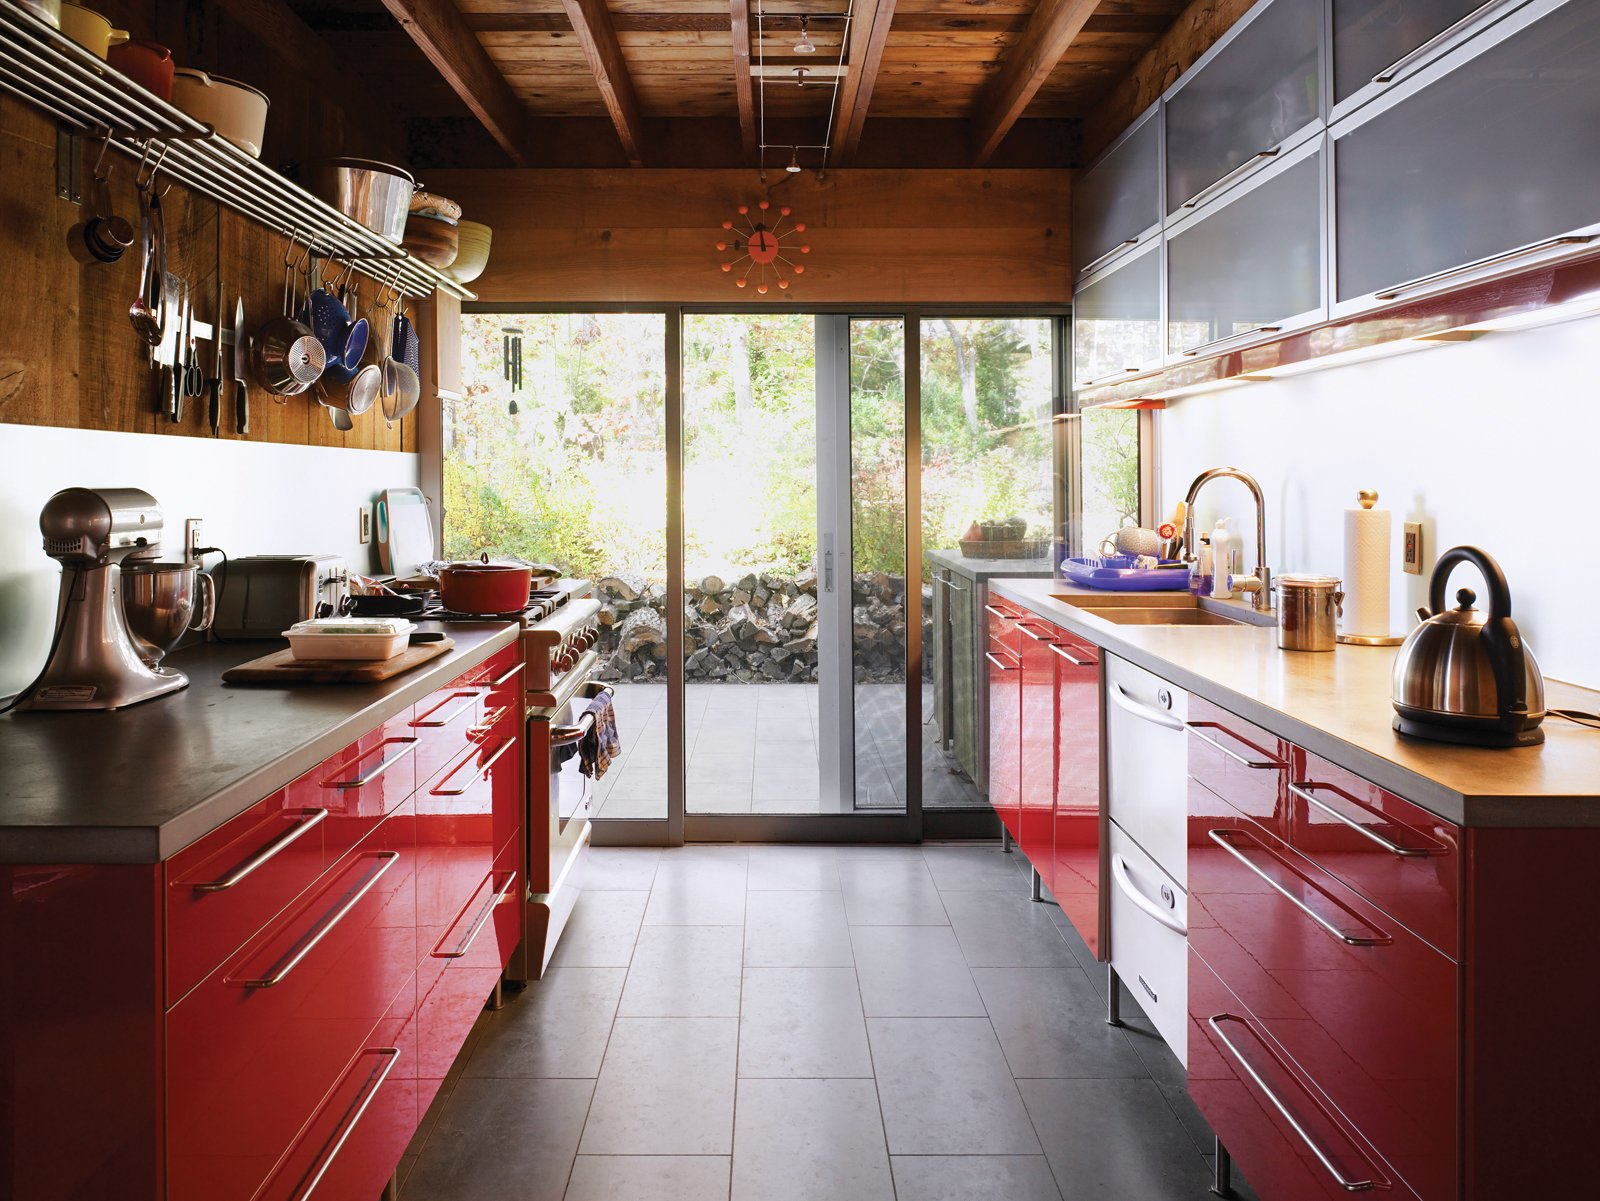 Fall Design Trend: Comfortable Kitchens Collection Of 6 Photos By Megan  Hamaker   Dwell